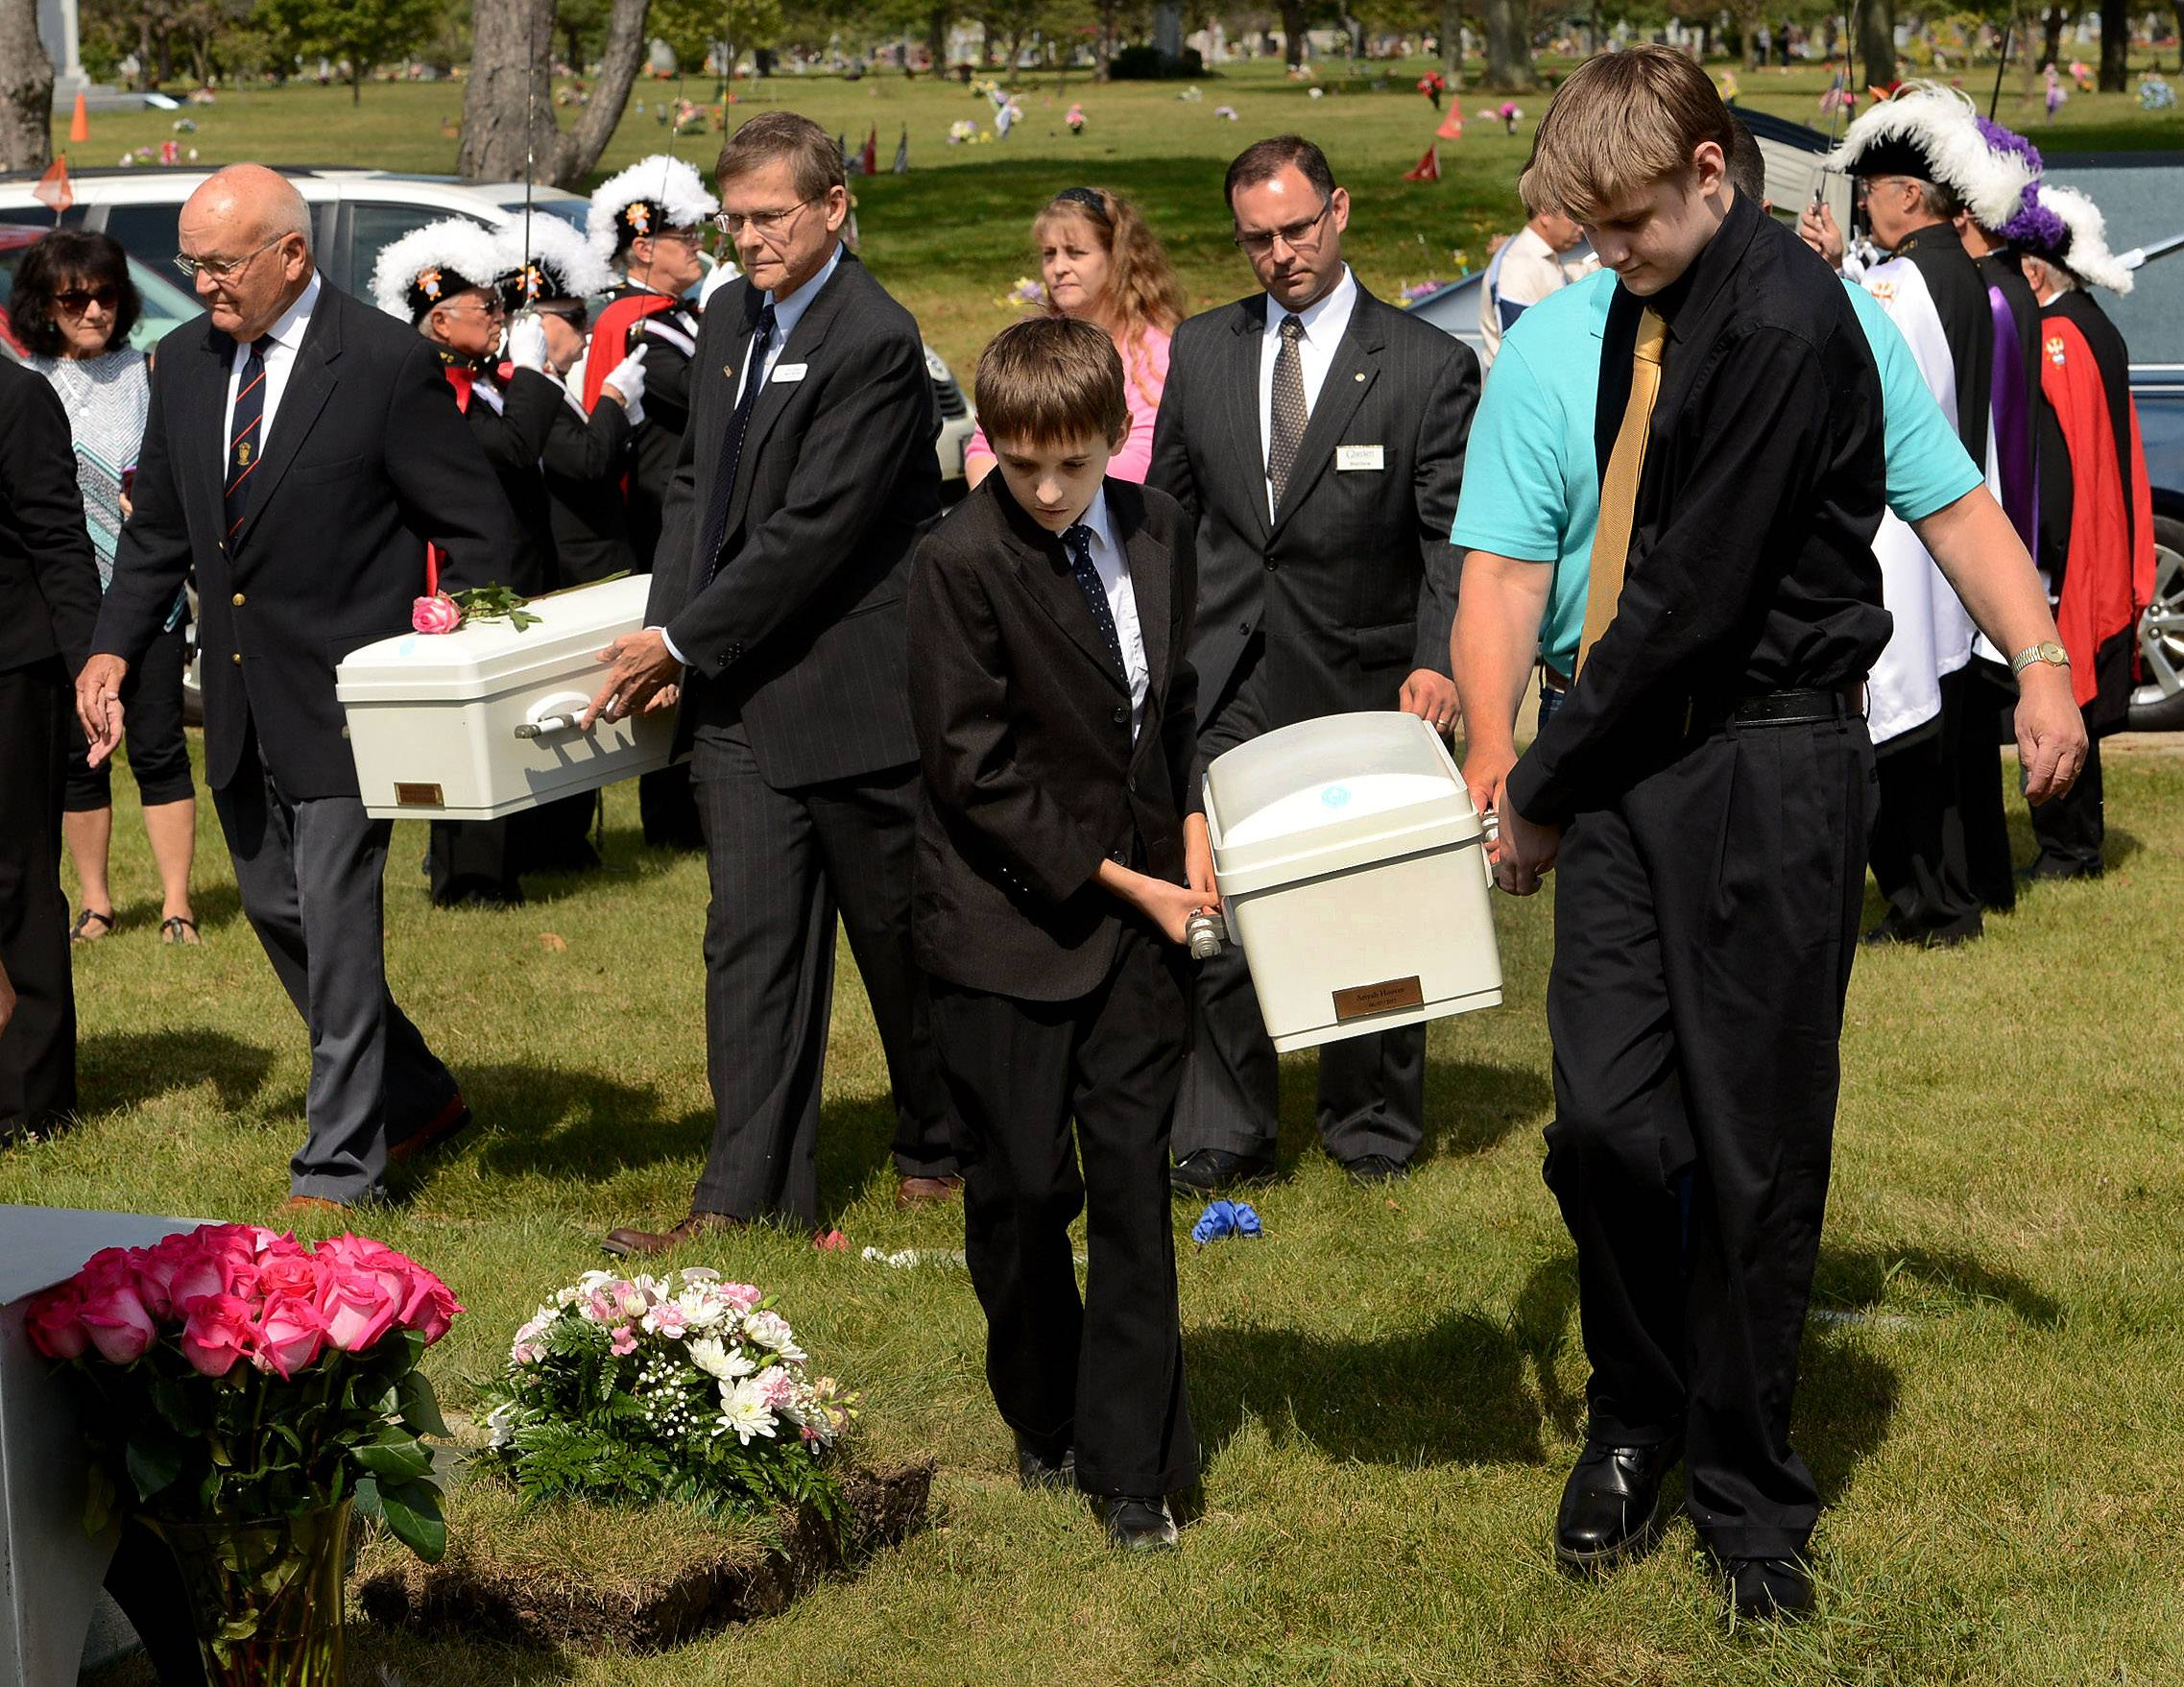 The caskets of babies Mariam Jane Uddin, left, and Ariyah Mikayla Hoover are brought to their gravesites for burial at All Saints Cemetery in Des Plaines. Pallbearers Frank and Joey Matusiewicz of Volo are on the right.